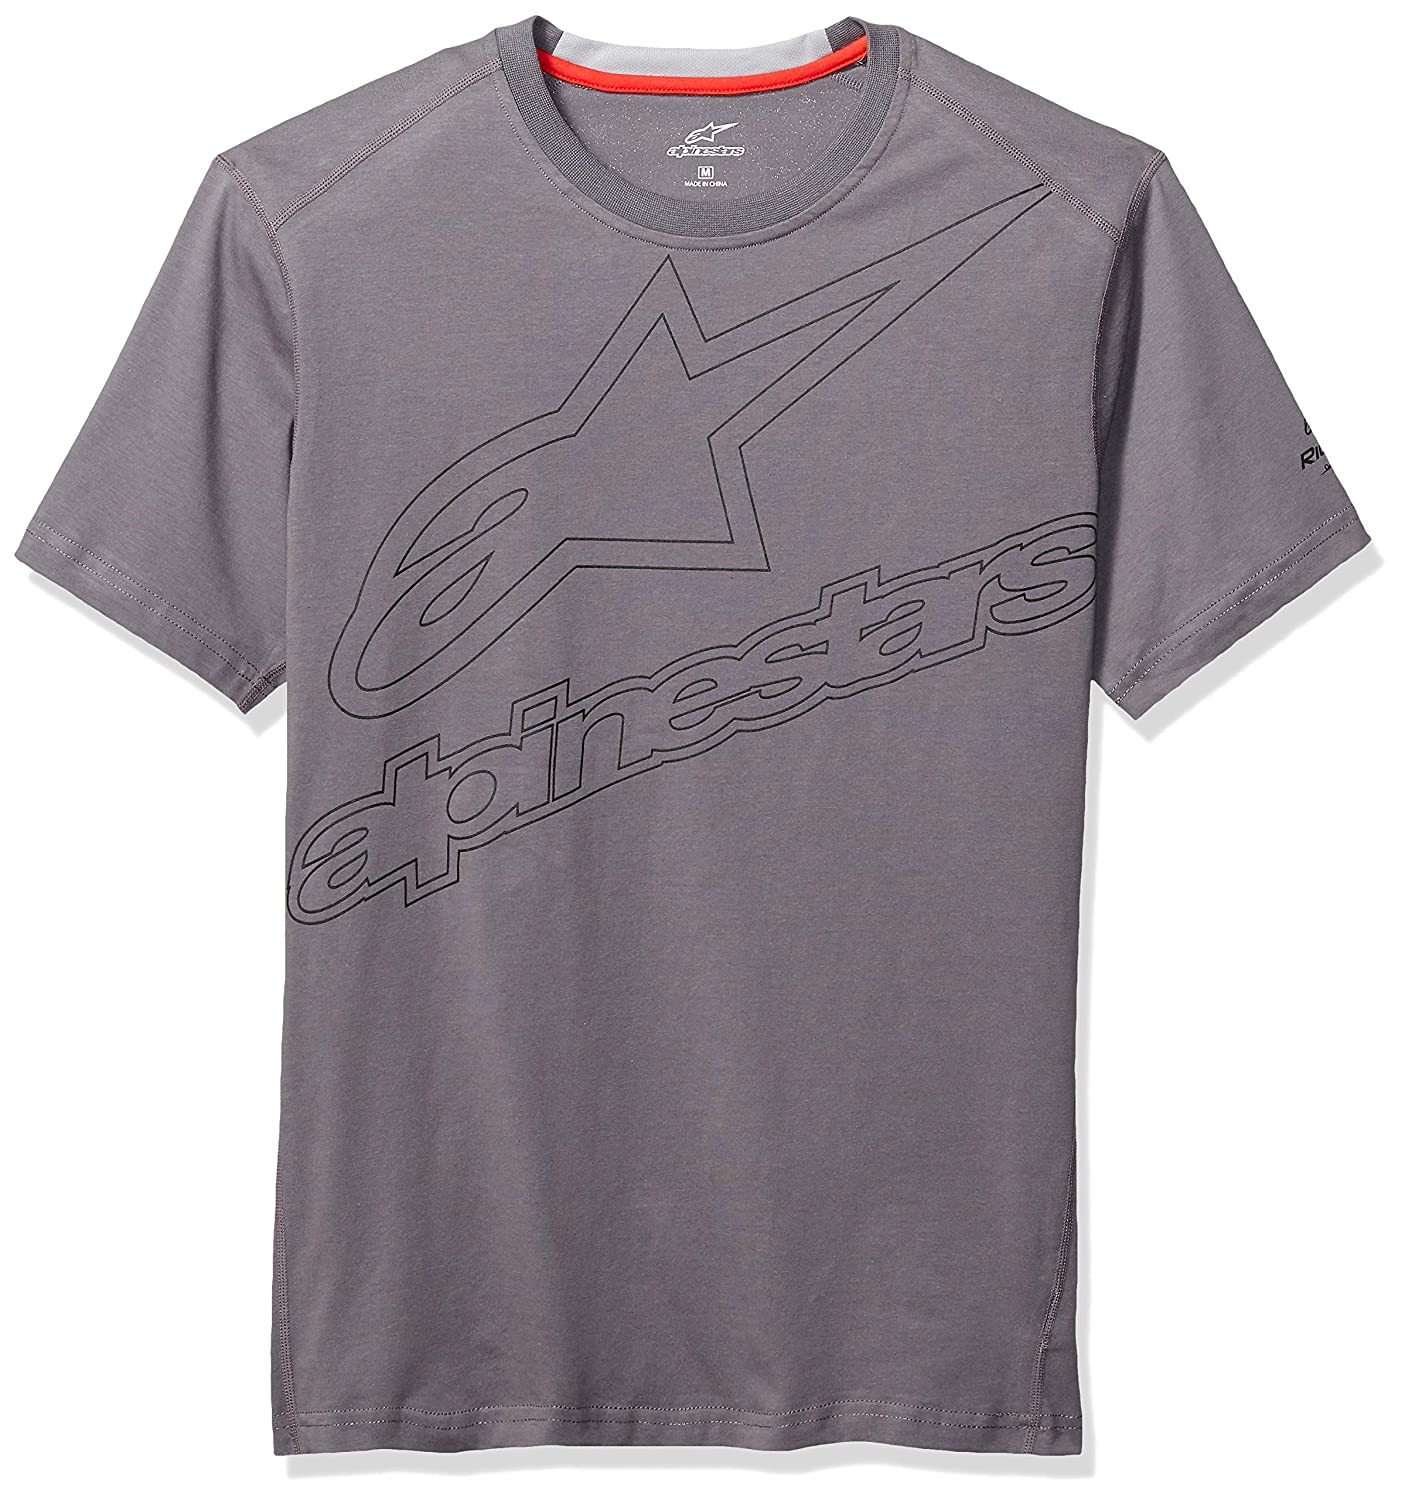 Velocity Ride Dry Tee Charcoal S Alpinestars Velocity Ride Dry Tee - t-Shirt tecnique, Coupe Moderne, Manches Courtes, Haute transpirabilité - Homme